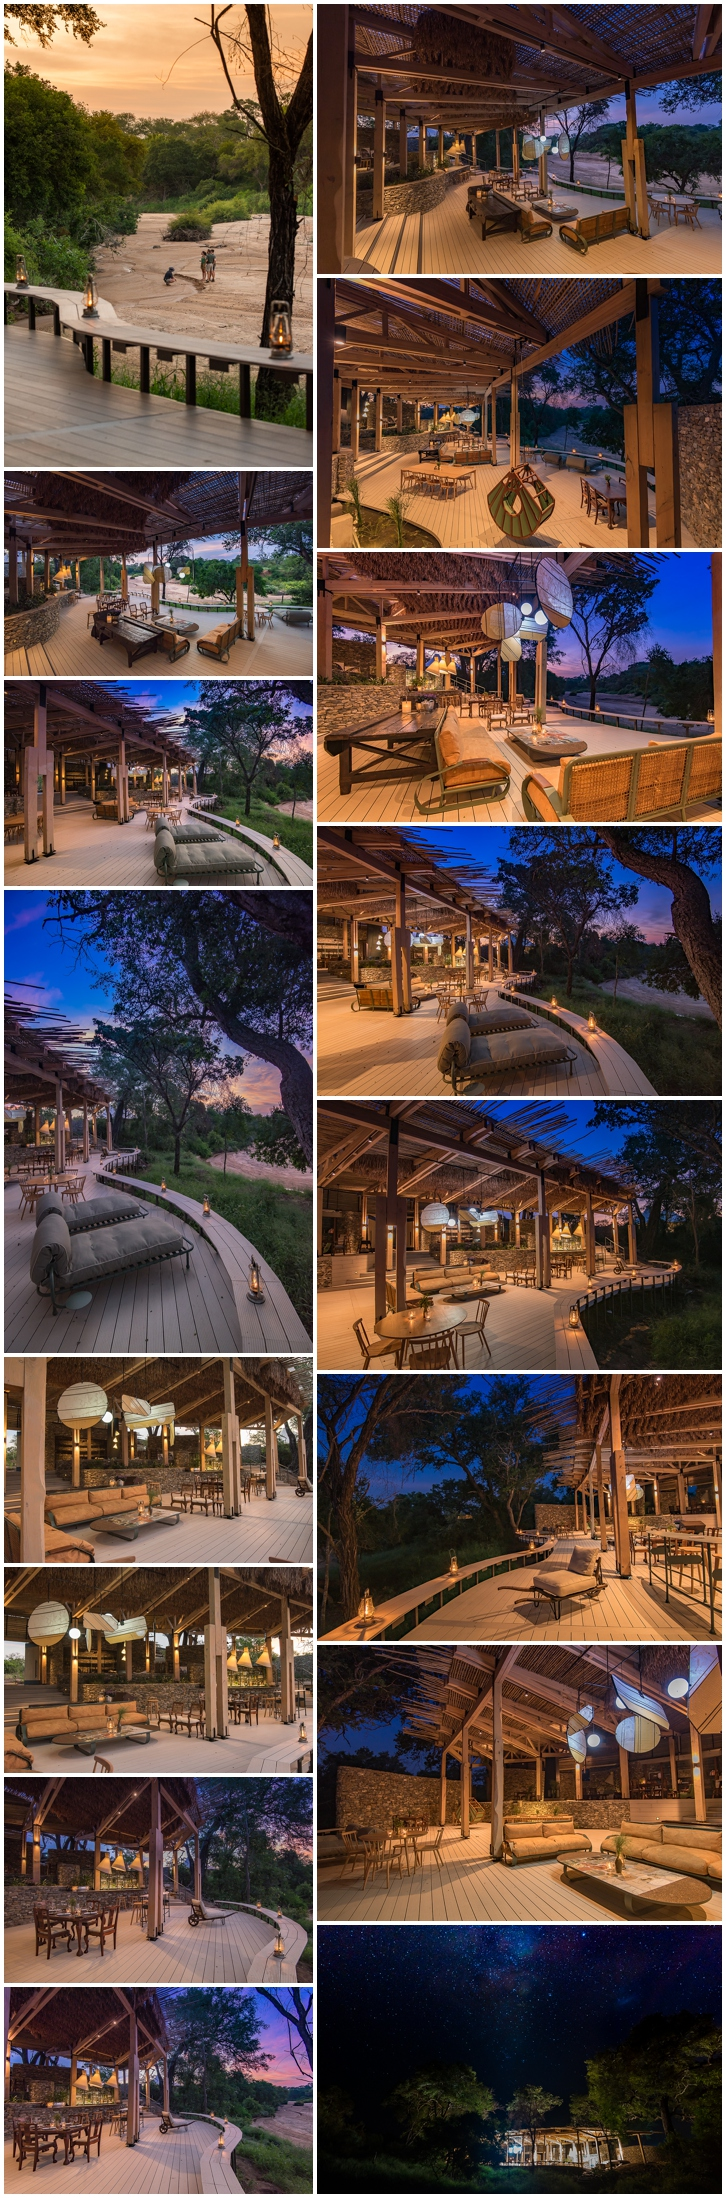 Luxury lodges thornybush